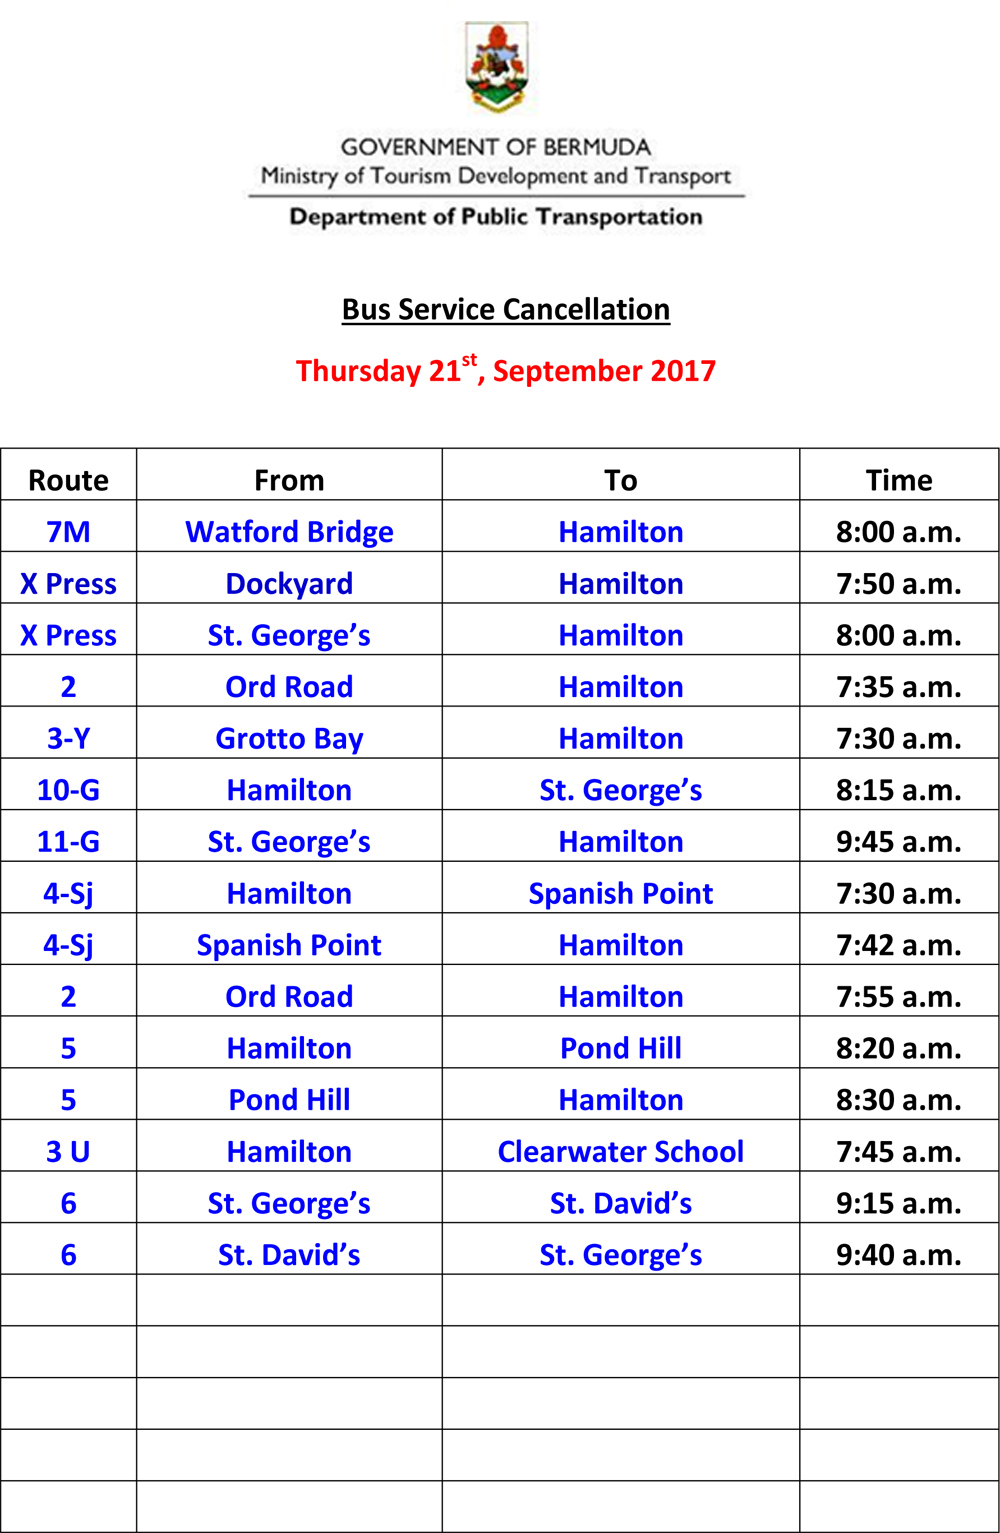 Microsoft Word - Bus Service Cancellation List fro David